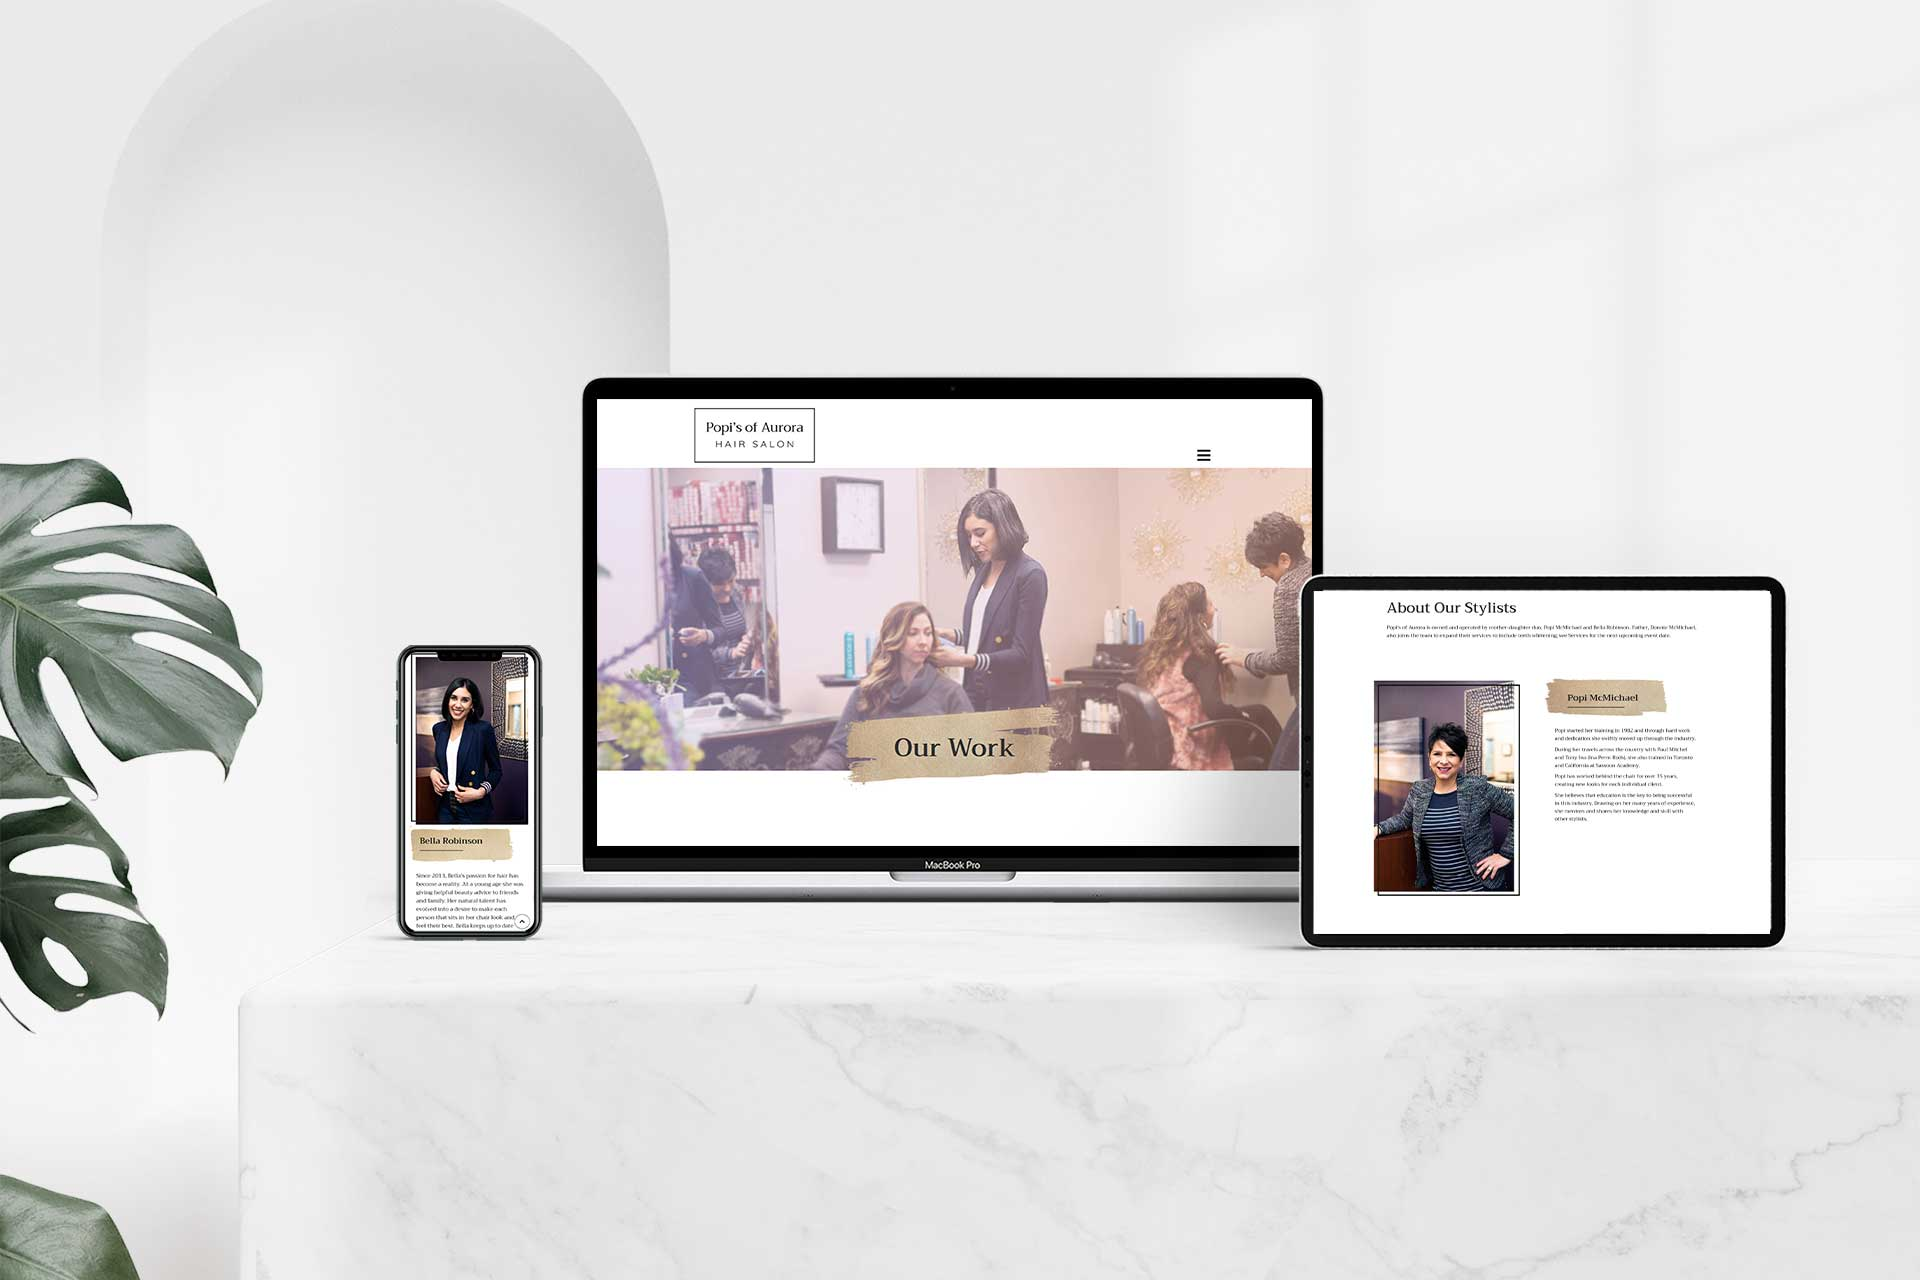 Popi's of Aurora Hair Salon Website Redesign